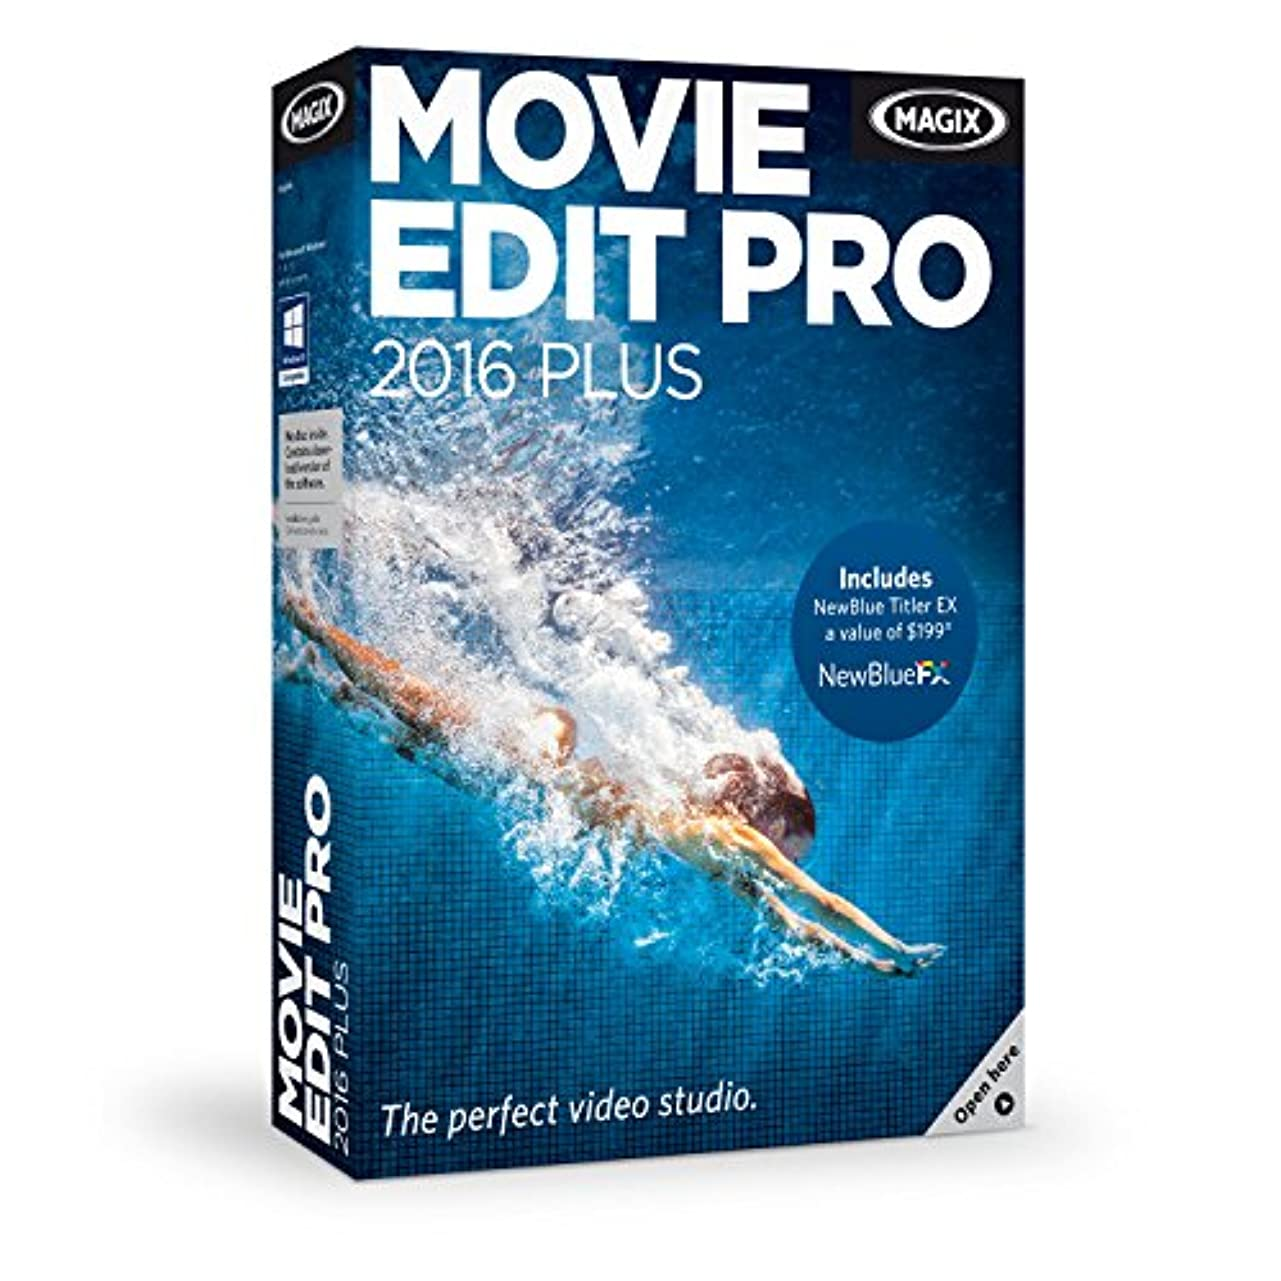 Magix Movie Edit Pro 2016 Plus [並行輸入品]